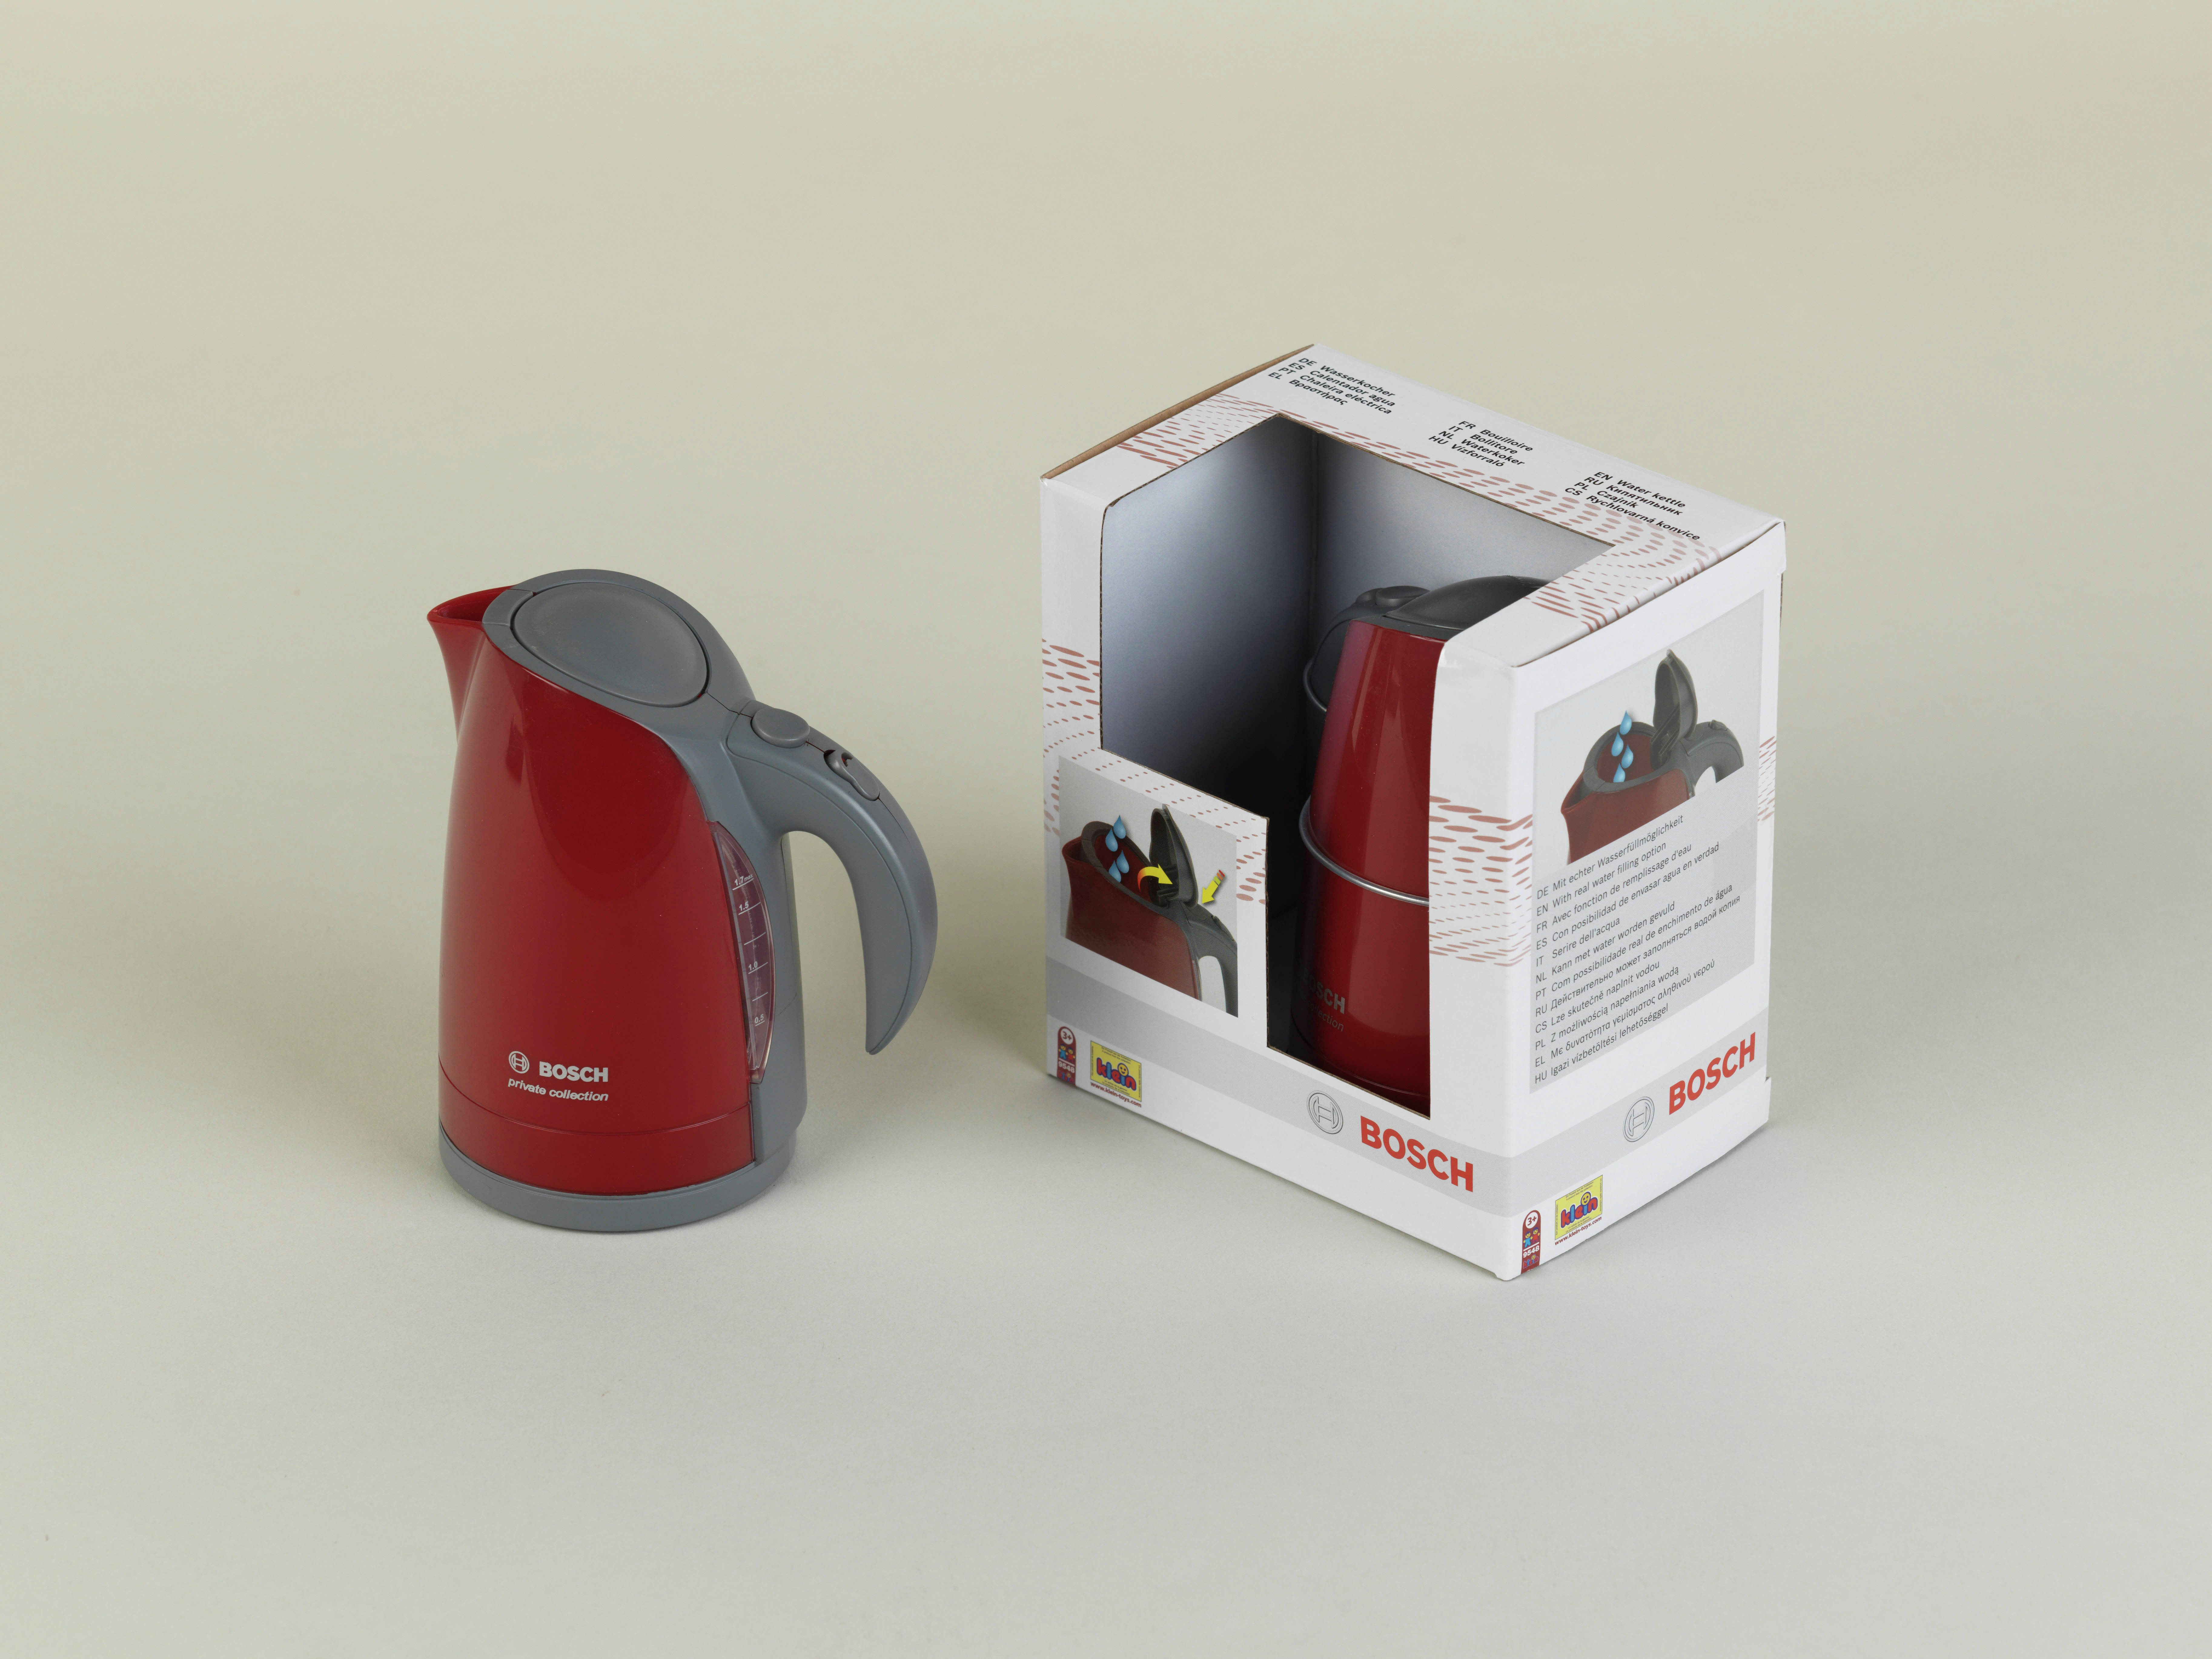 Image of Bosch Toy Kettle.